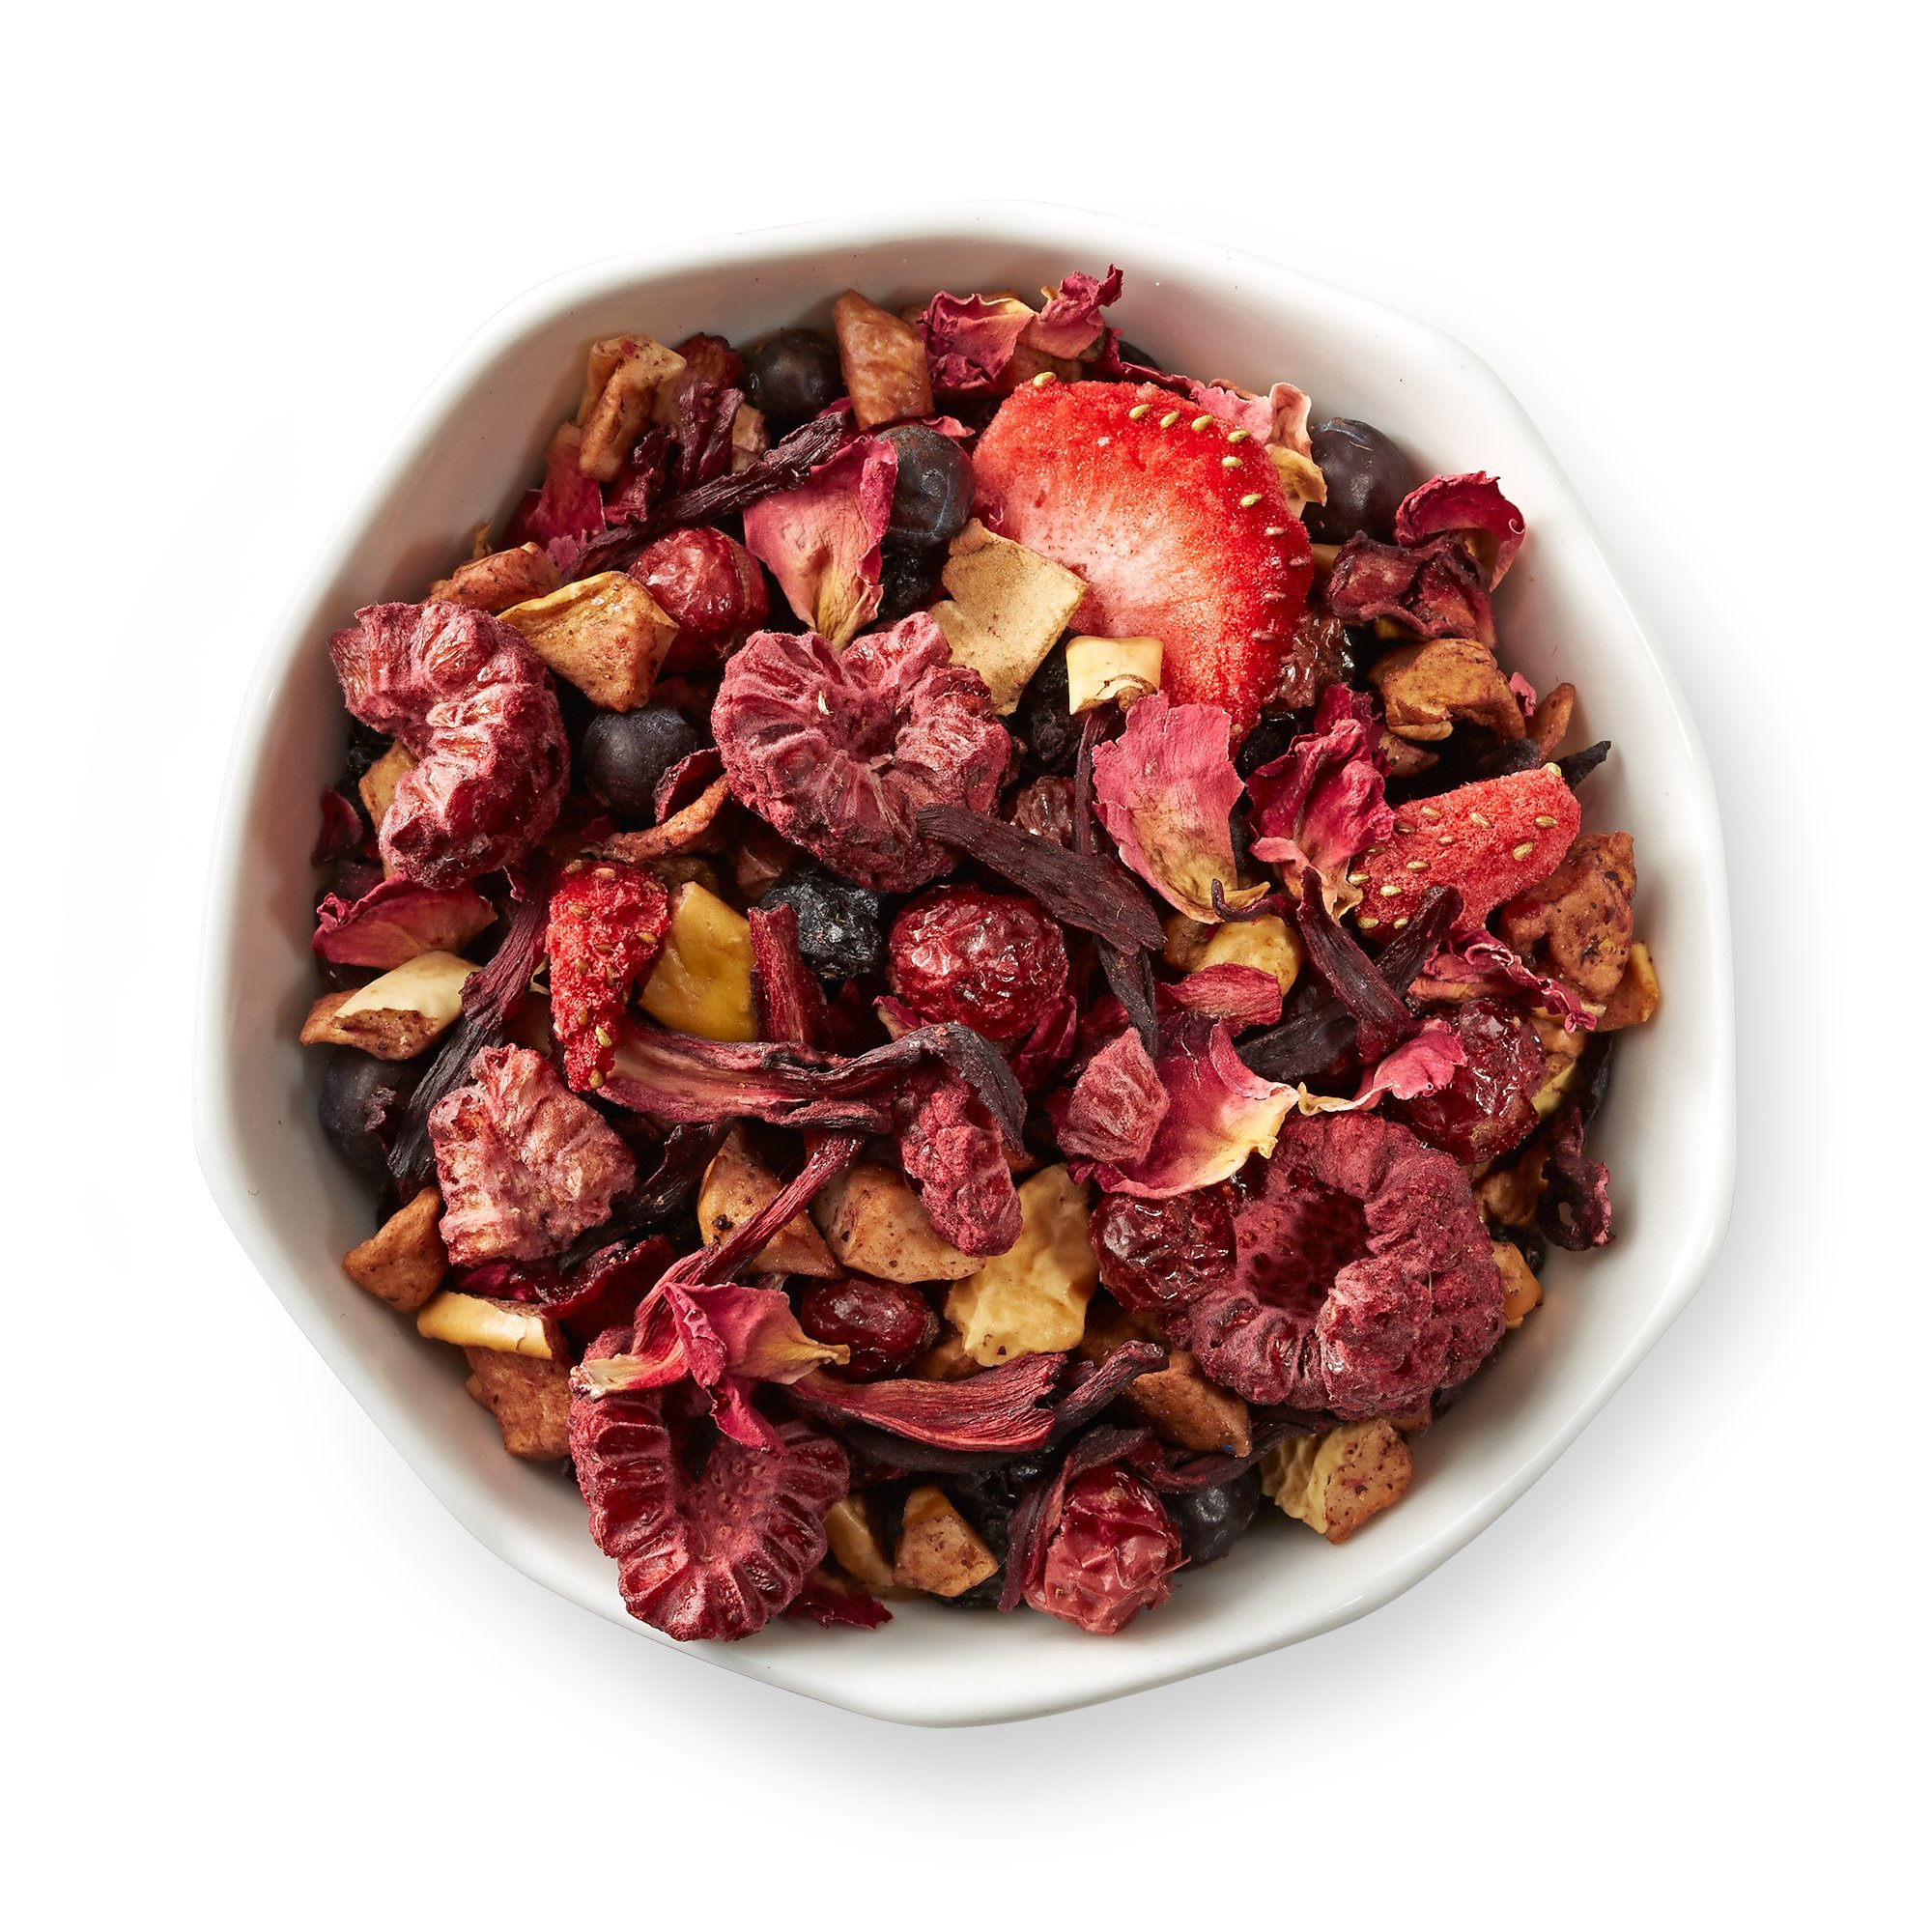 youthberry and wild orange blossom tea benefits